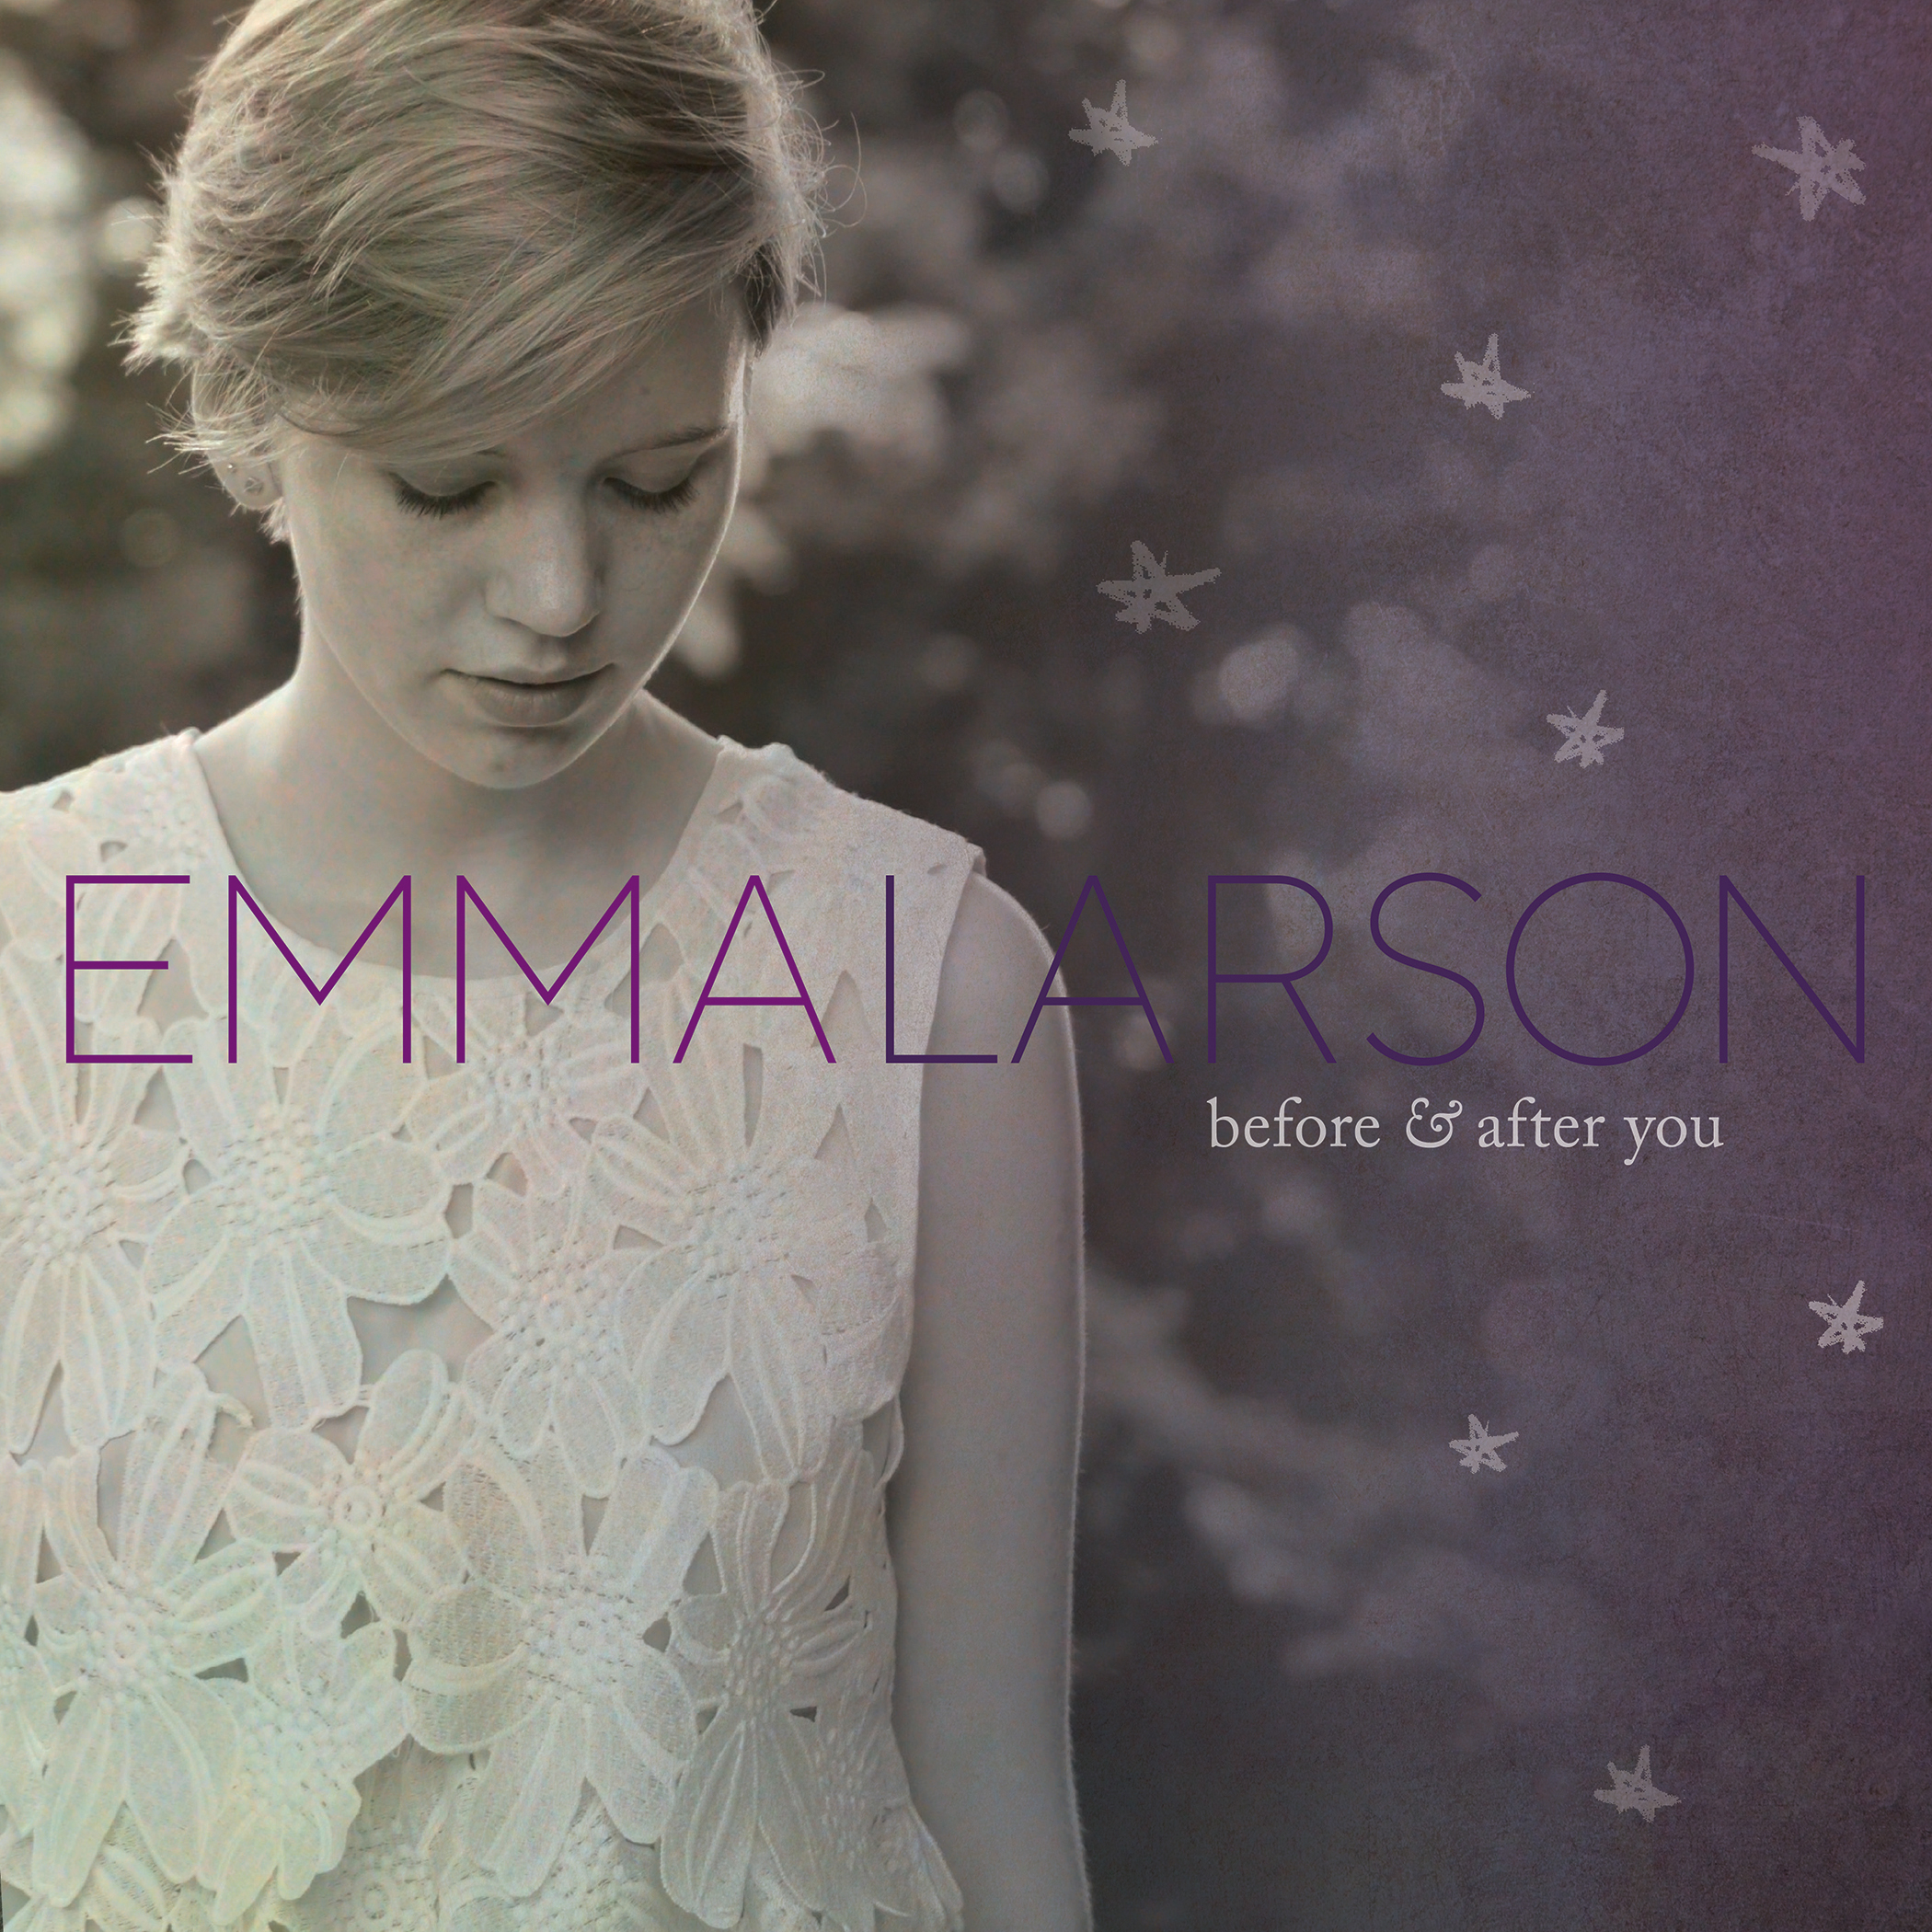 Before & After You - Emma Larson